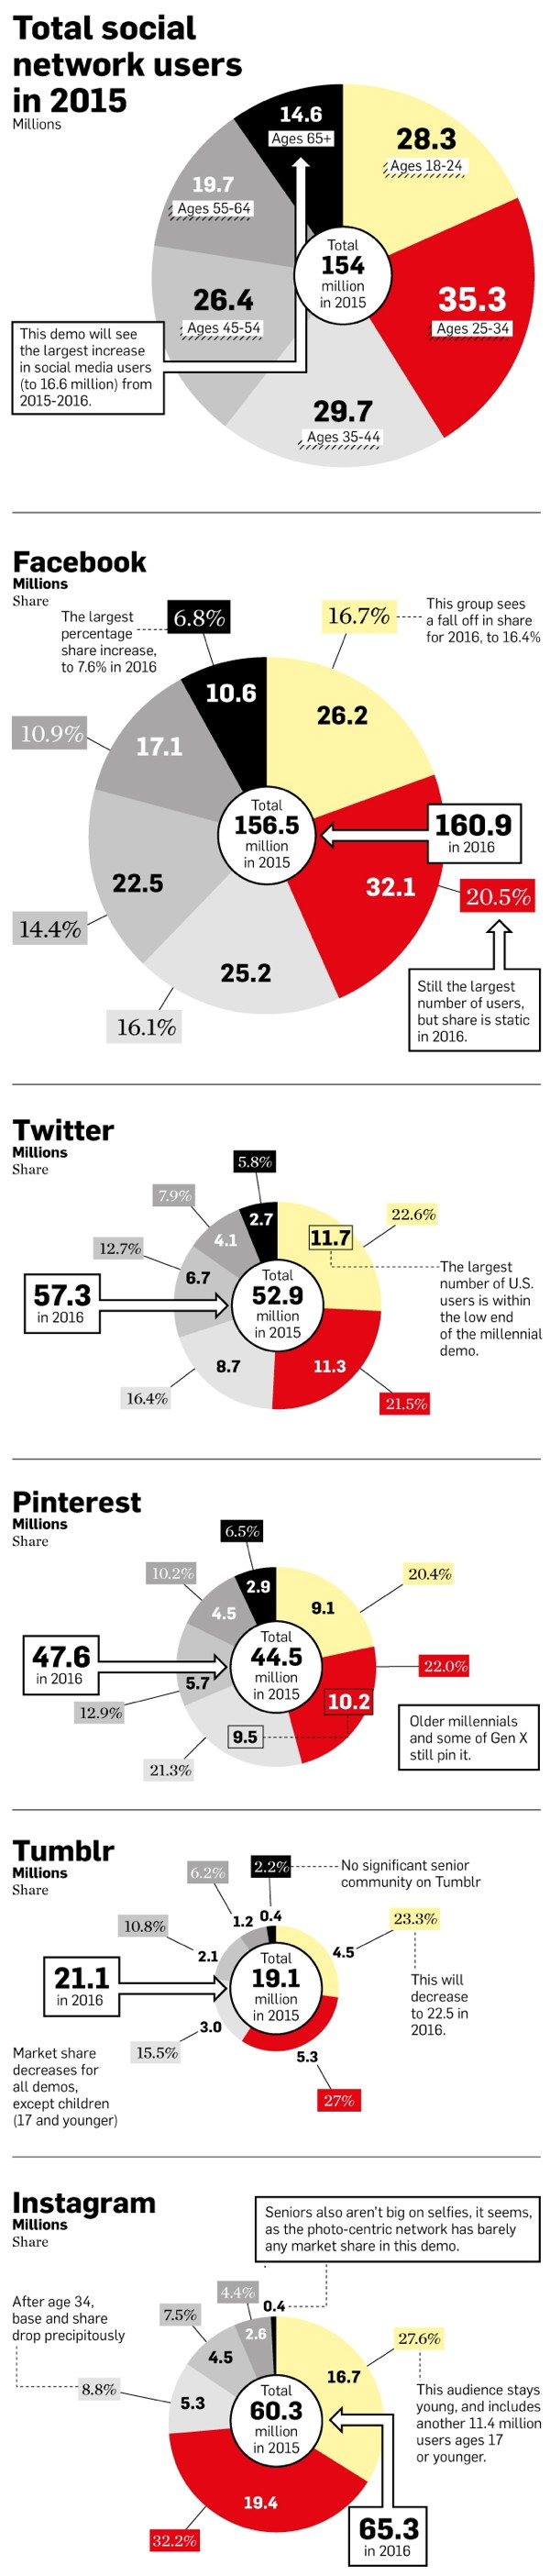 eMarketer Social Networking 2015